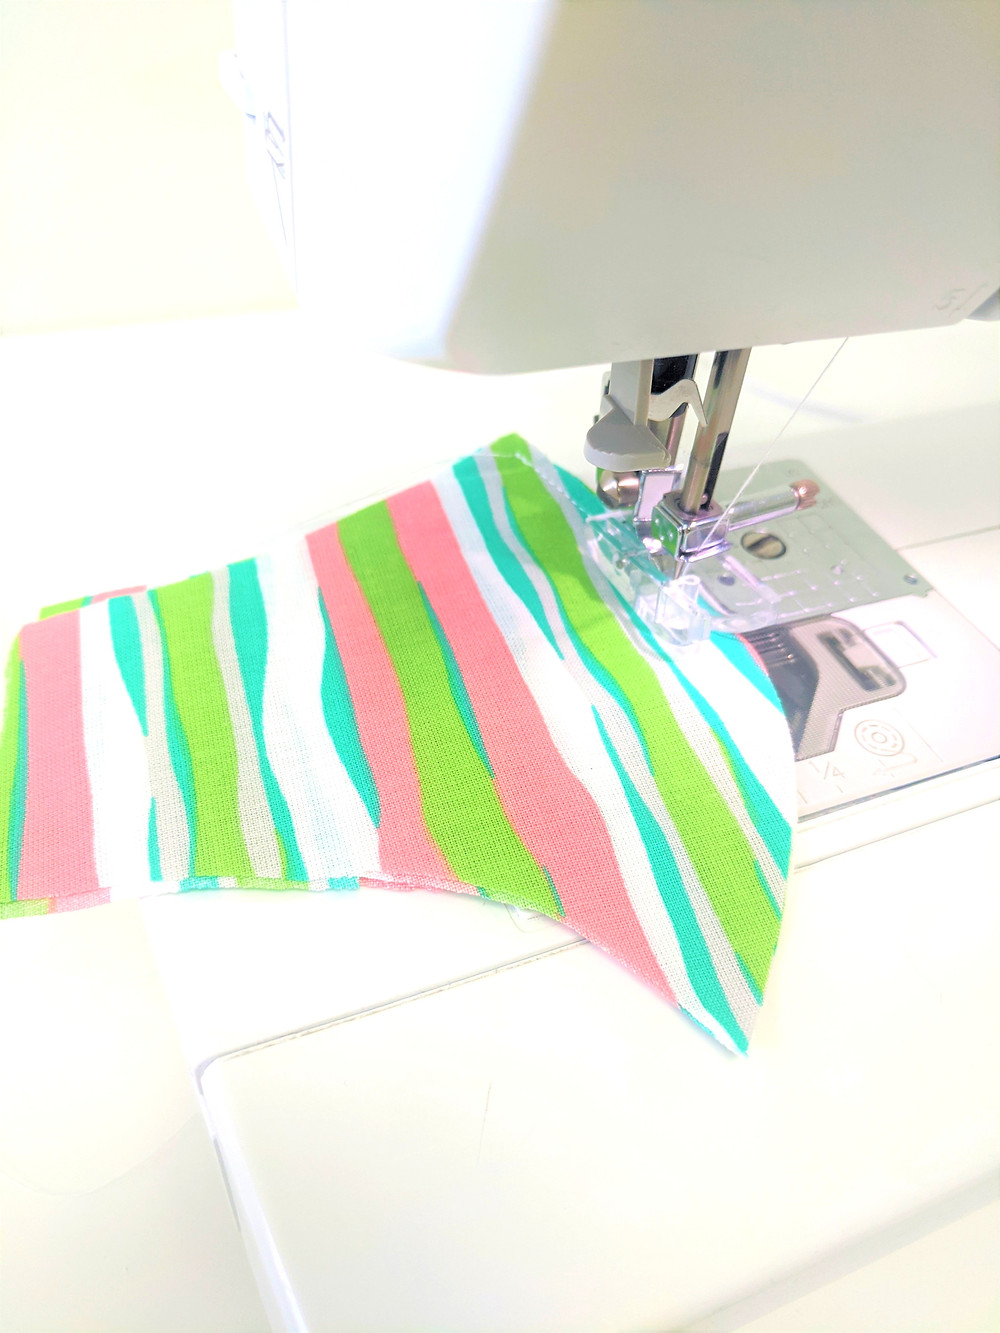 Sewing with a Basic Stitch